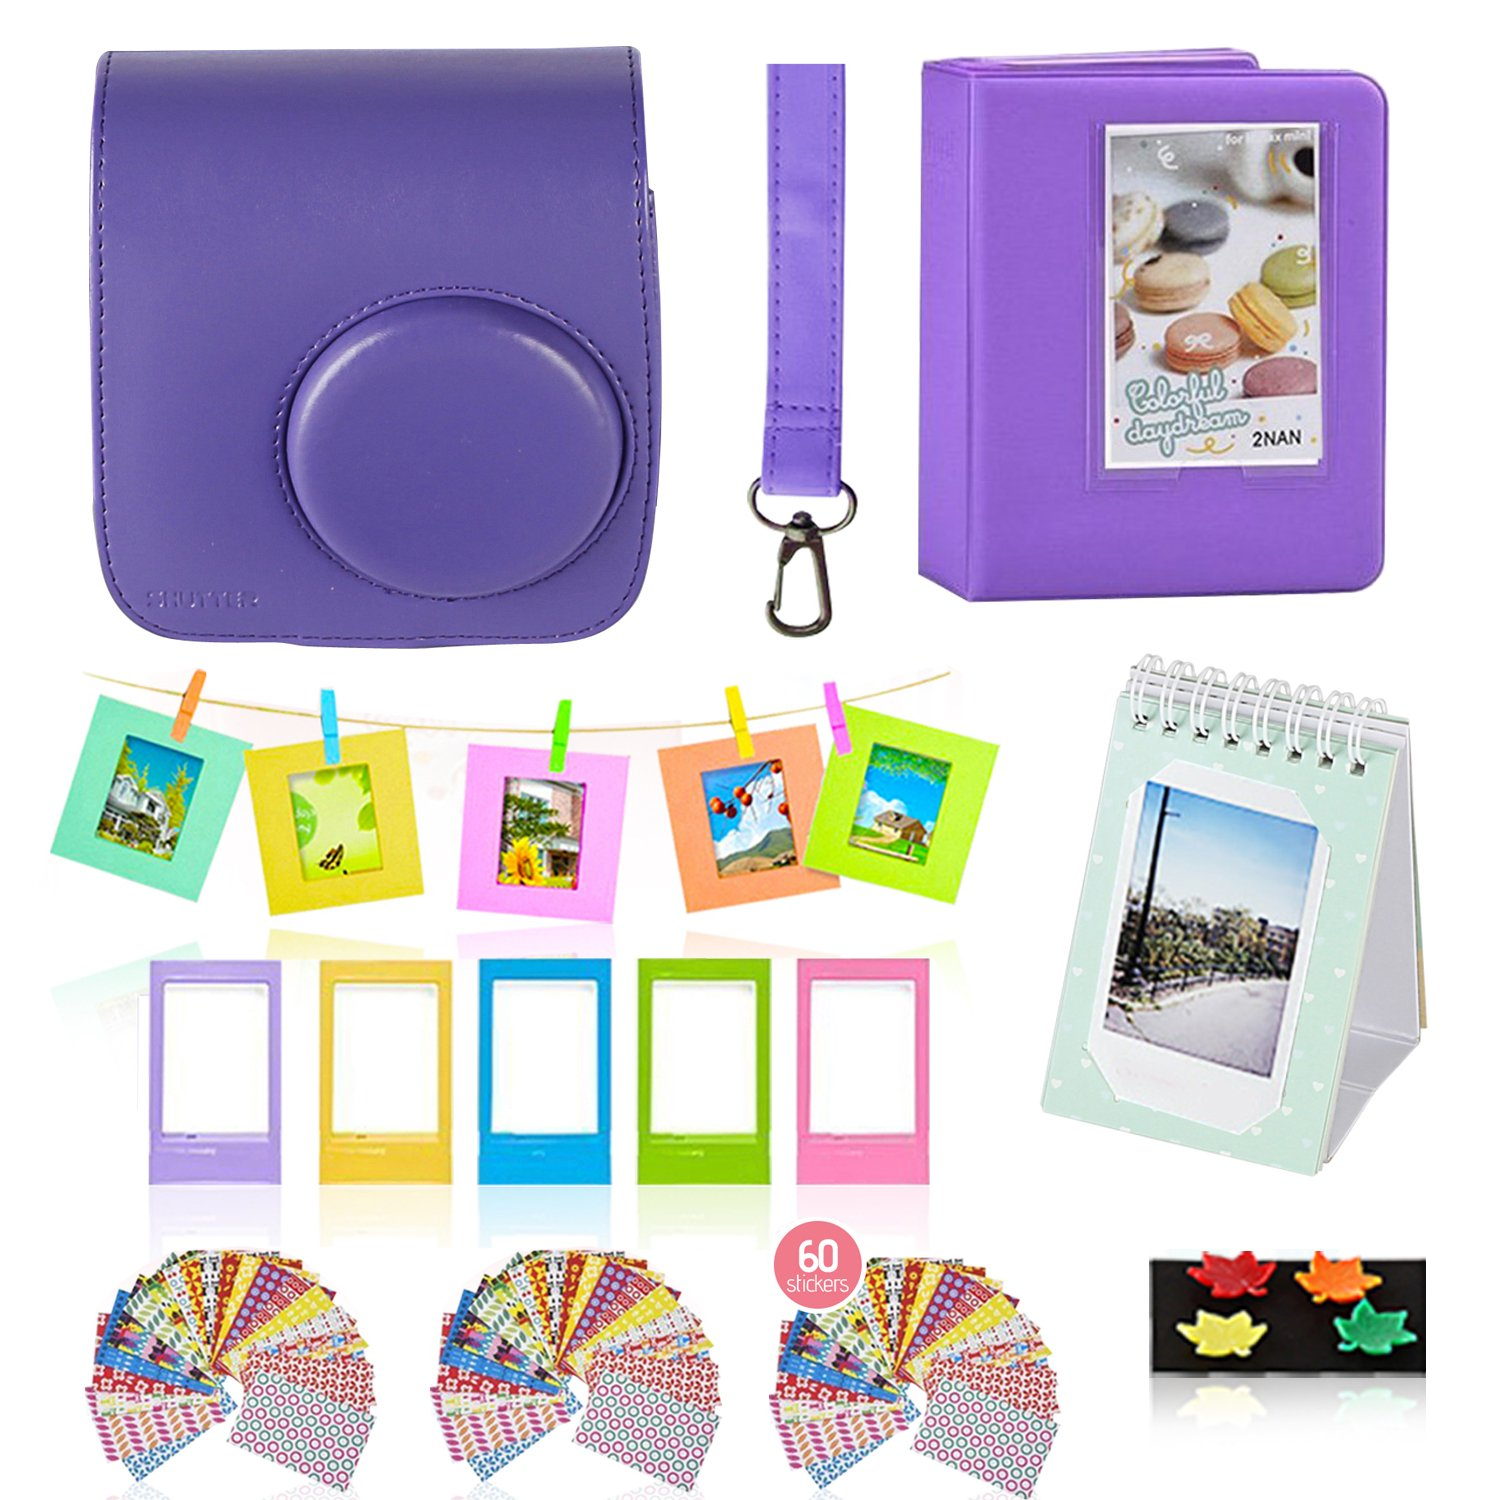 Polaroid Accessories. Polaroid Camera PIC-300 Instant Film Bundle, 9 PC Kit Includes: Polaroid Case + Strap + Photo Album + Standing Album + Wall Hanging Frames + 60 Stickers + 5 Frames, + Gift Set.